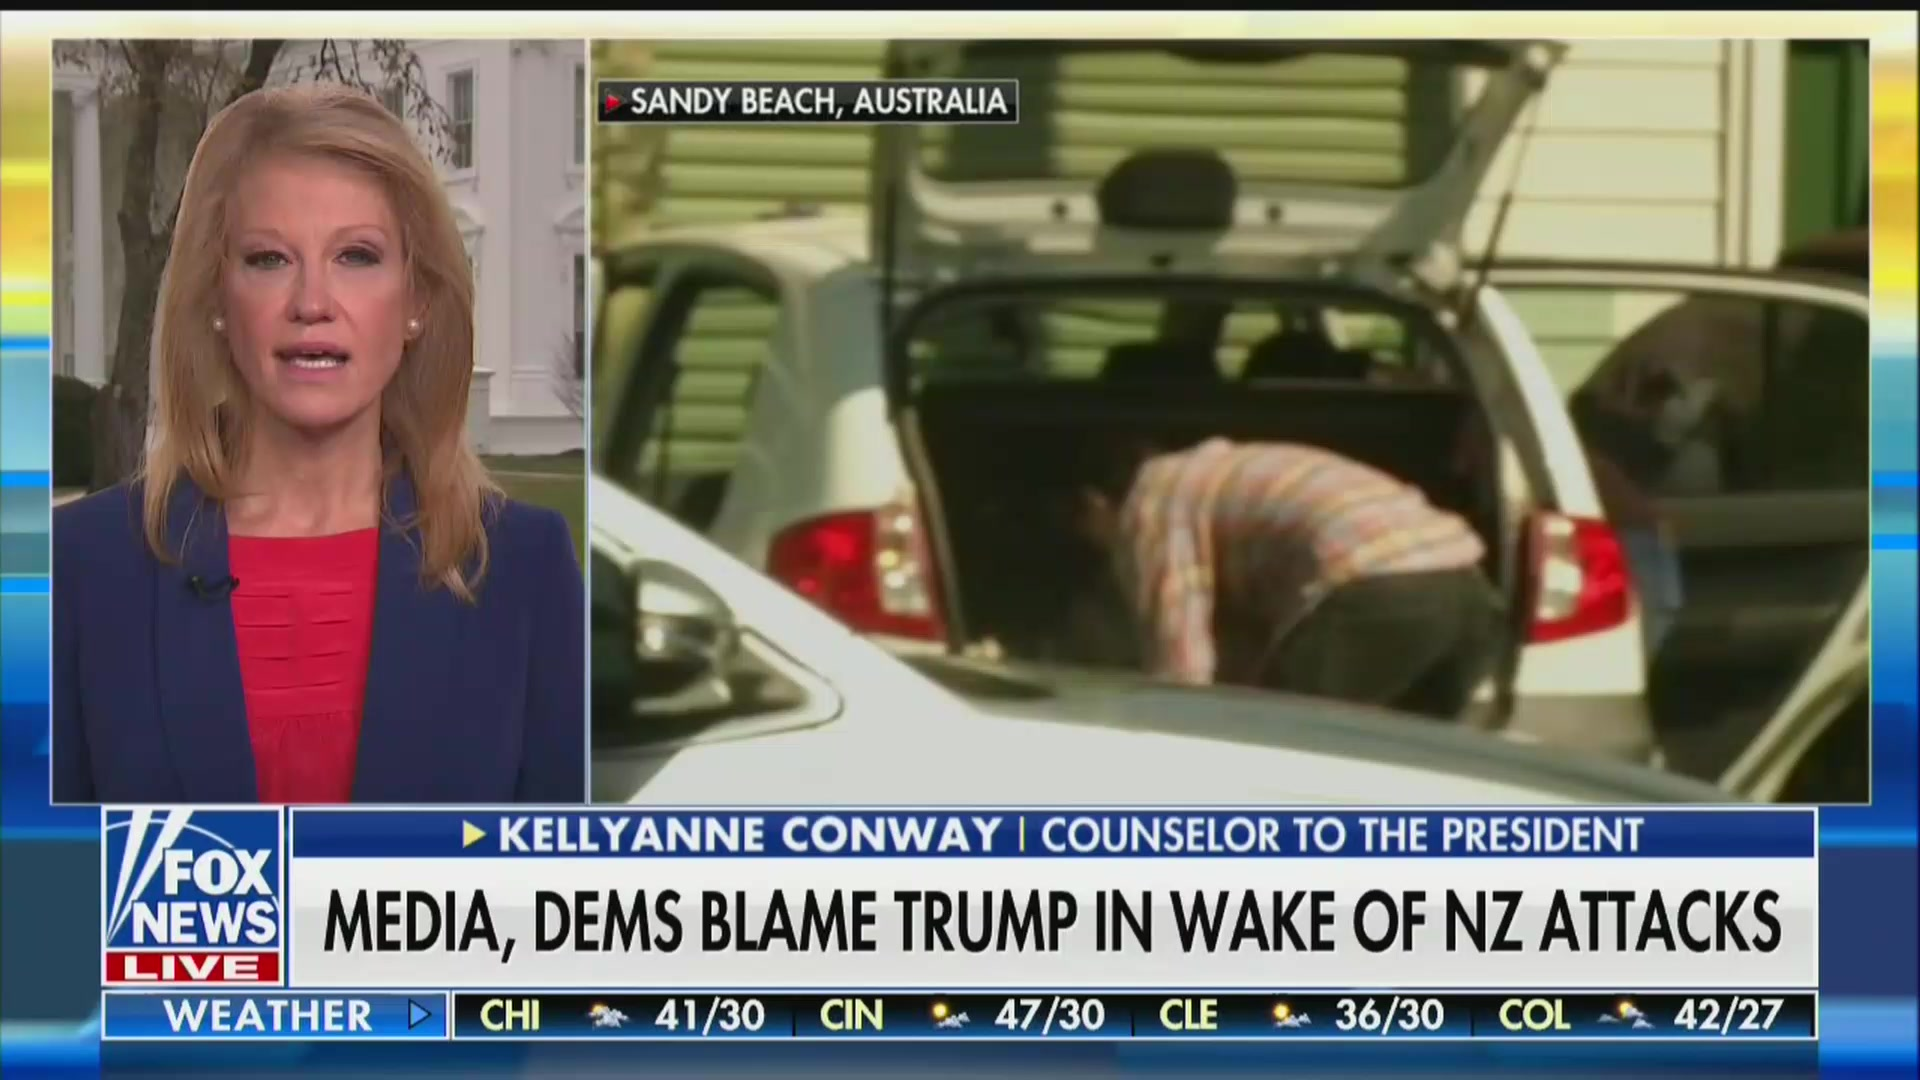 Kellyanne Conway Calls on Fox Viewers to Read New Zealand Shooter's 'Entire' Racist Manifesto